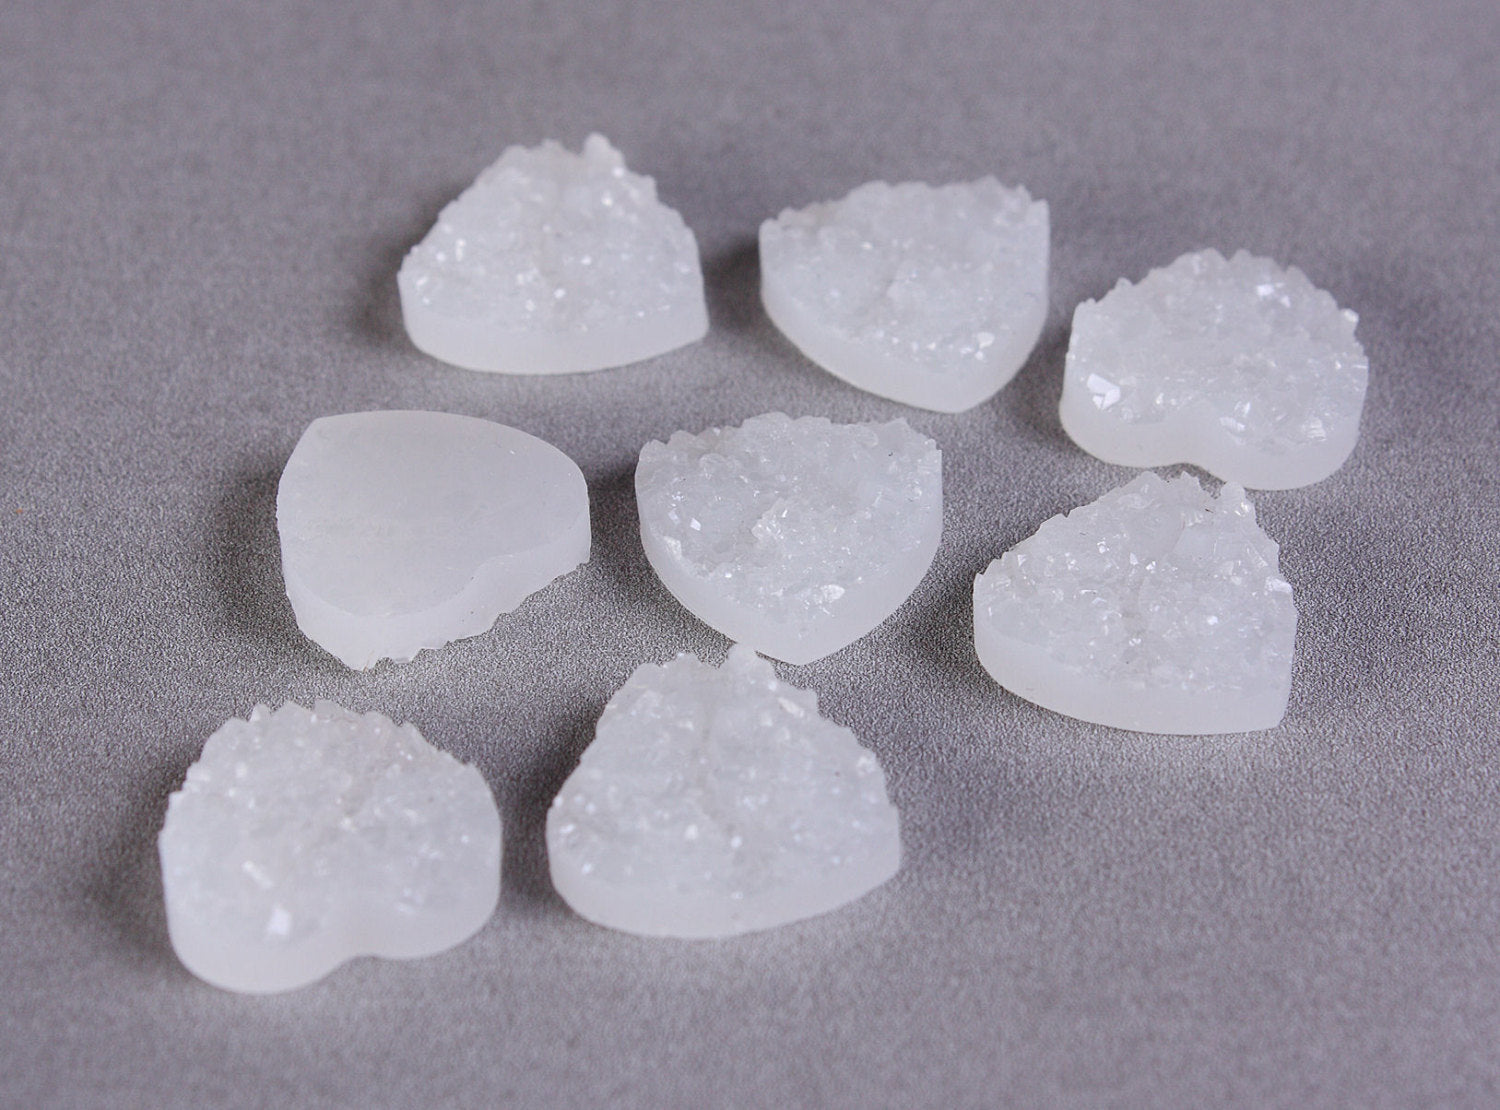 12mm White heart resin cabochon - Faux druzy cabochon - Faux drusy cabochon - Textured cabochons - 8 pieces (1295)